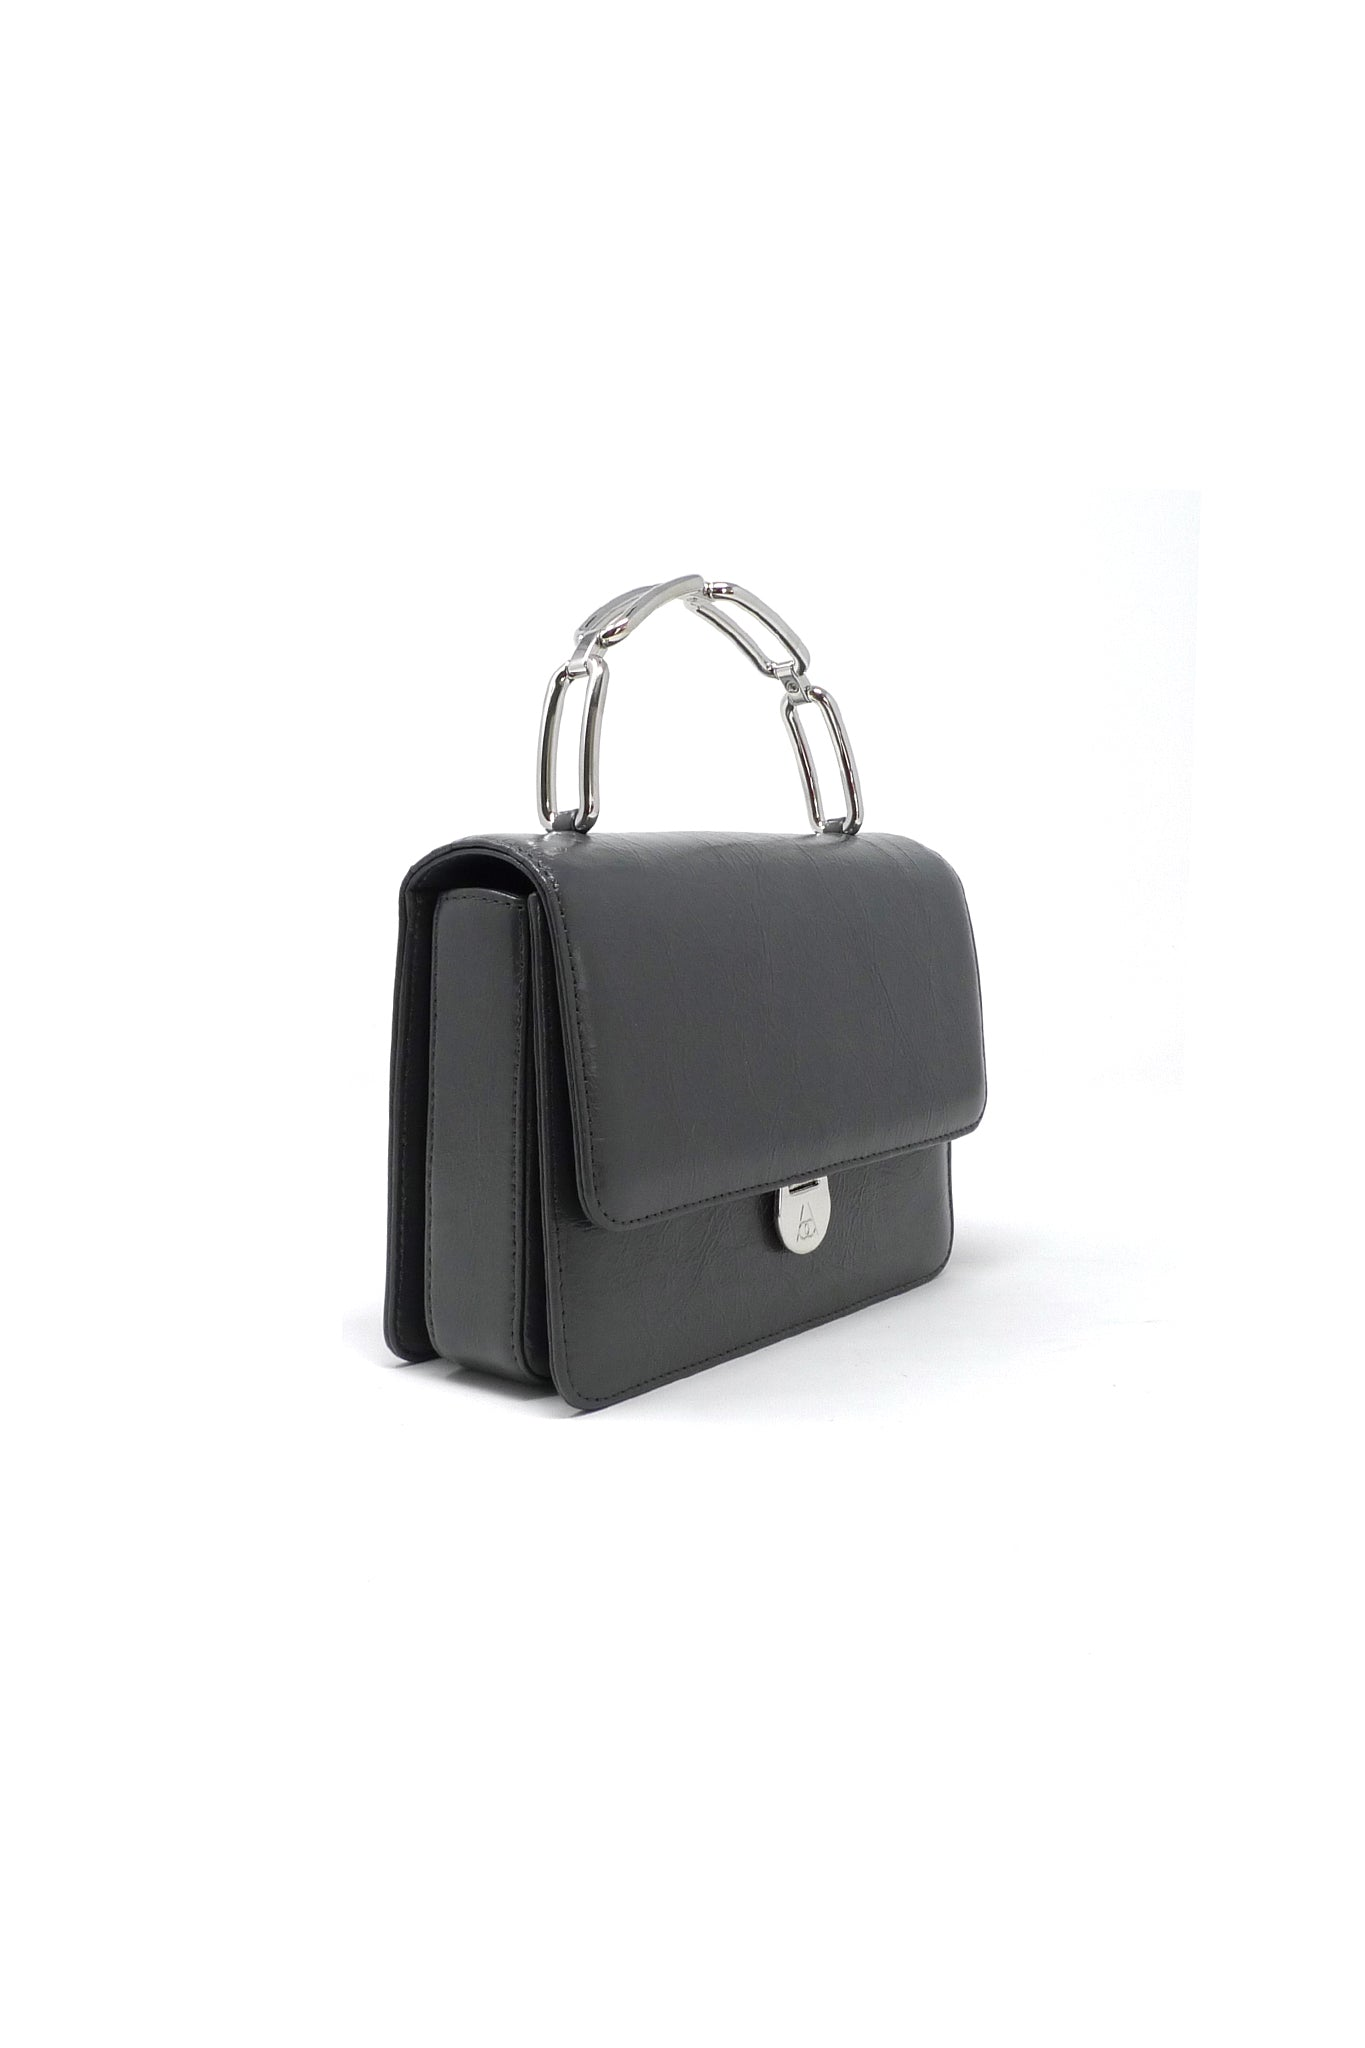 Lynx Top Handle Bag in Grey Leather